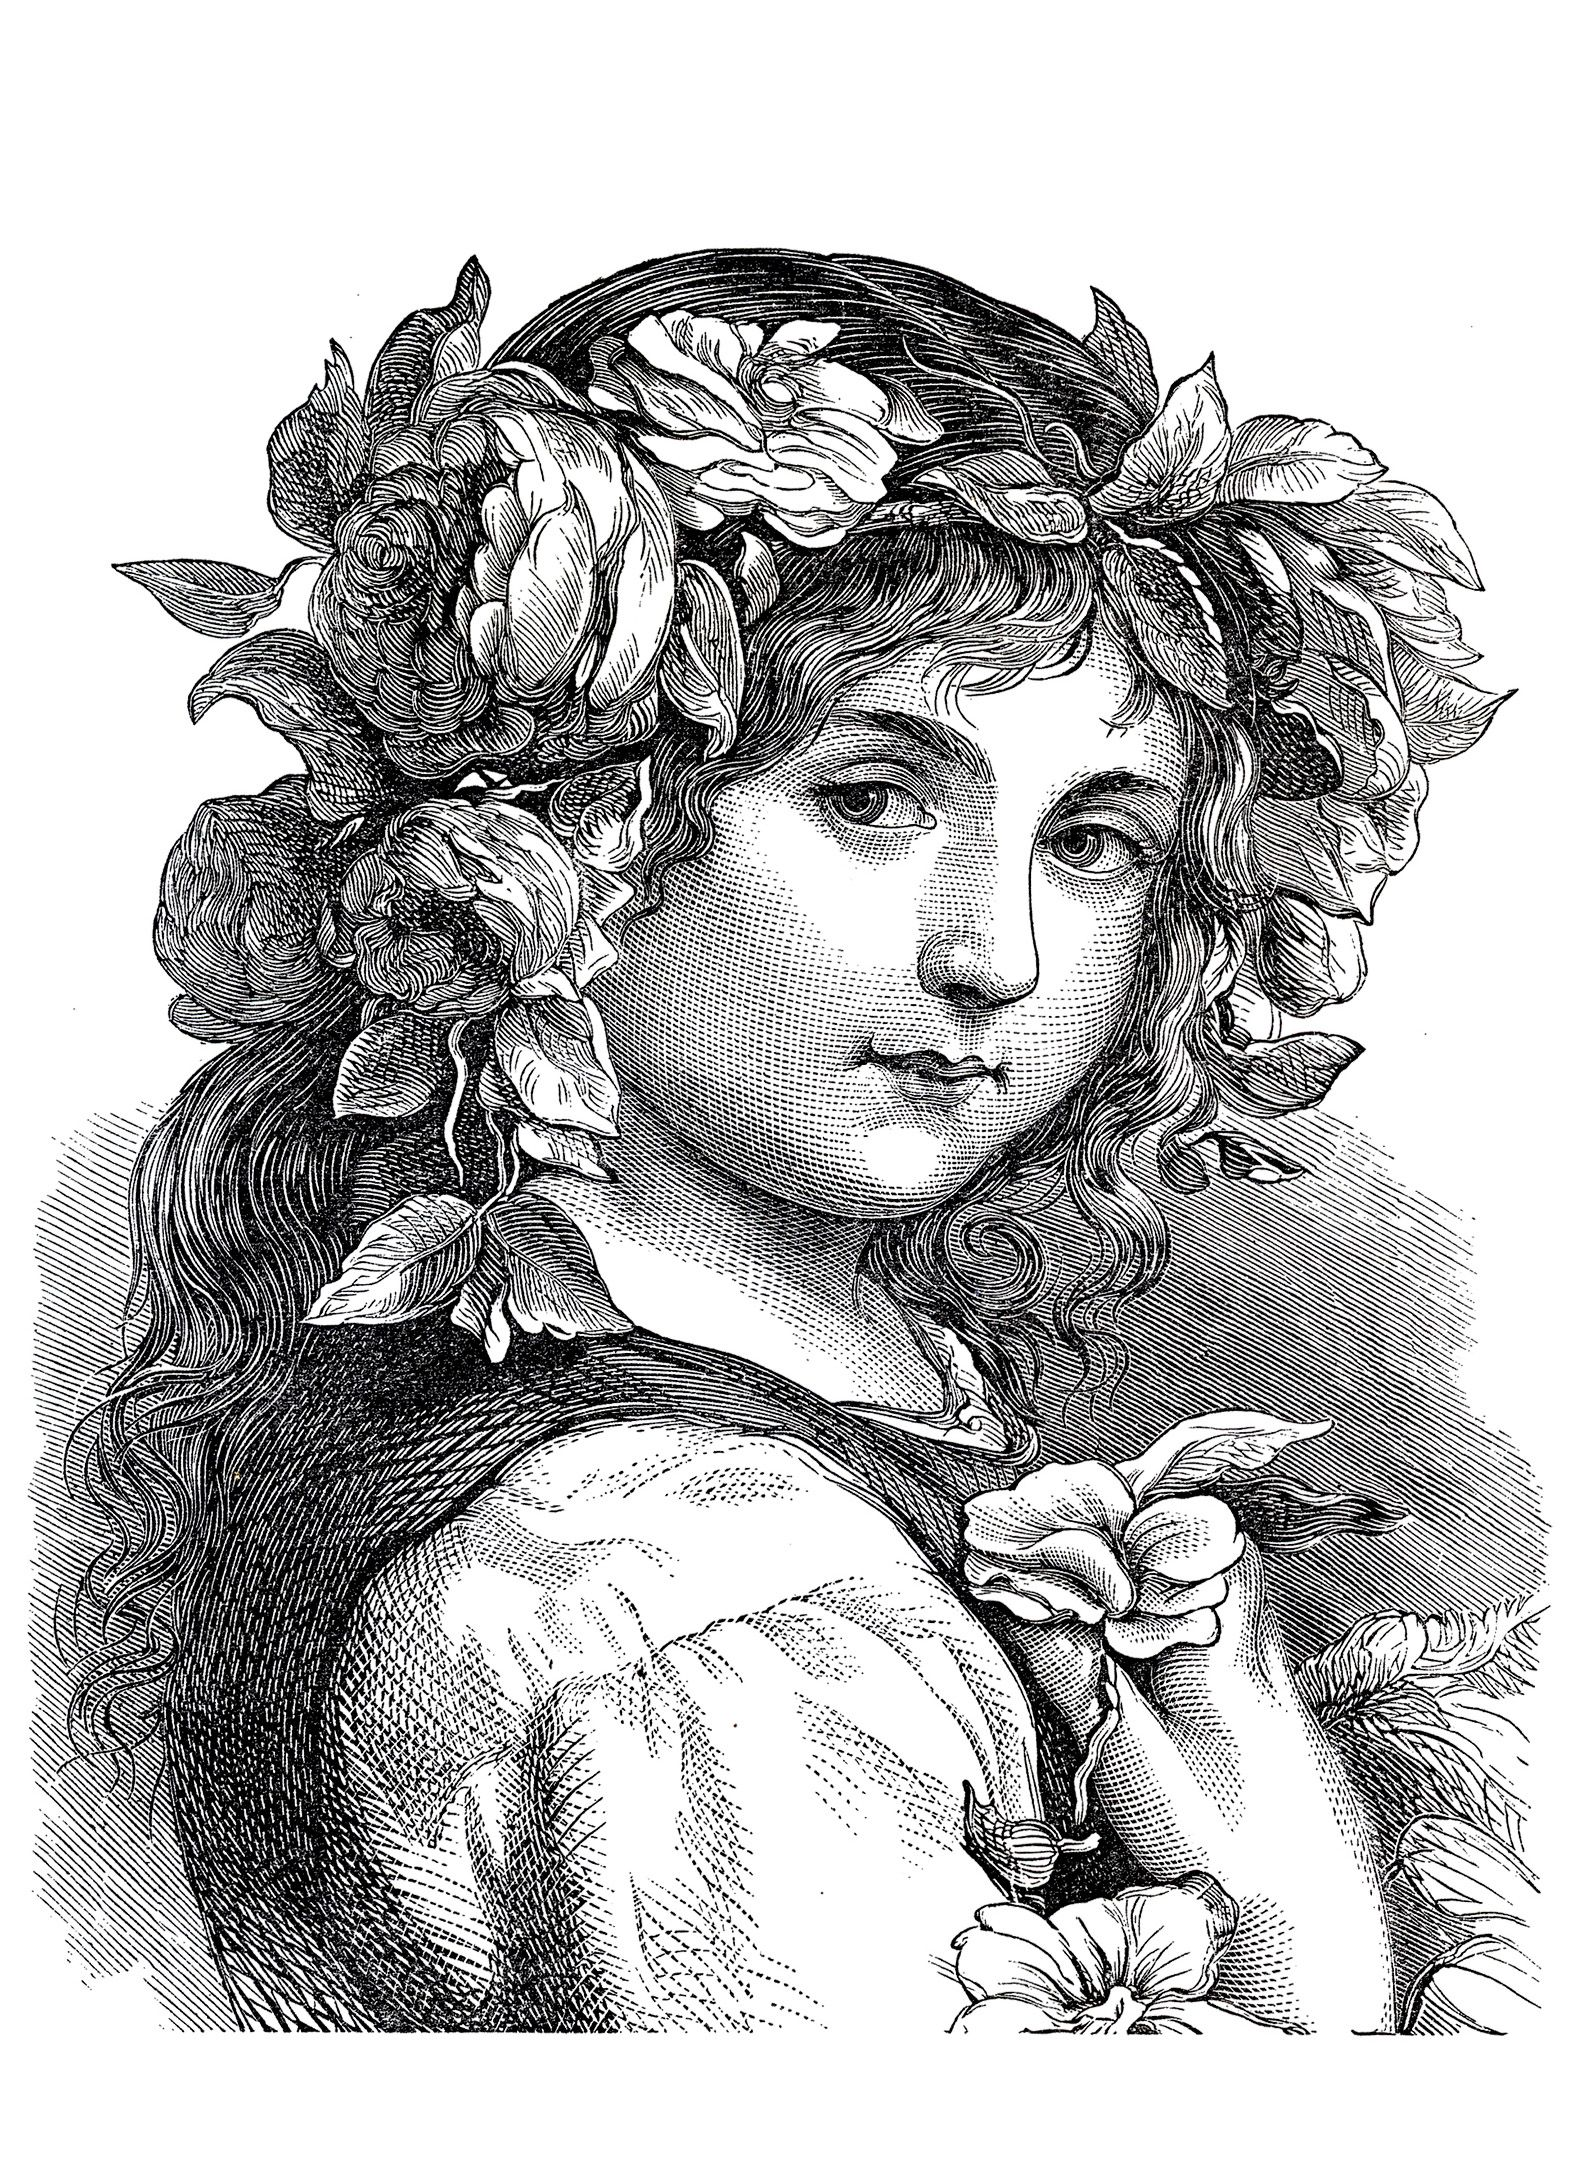 adult engraving flower girl 1868 coloring pages printable and coloring book to print for free find more coloring pages online for kids and adults of adult - Flower Girl Coloring Book